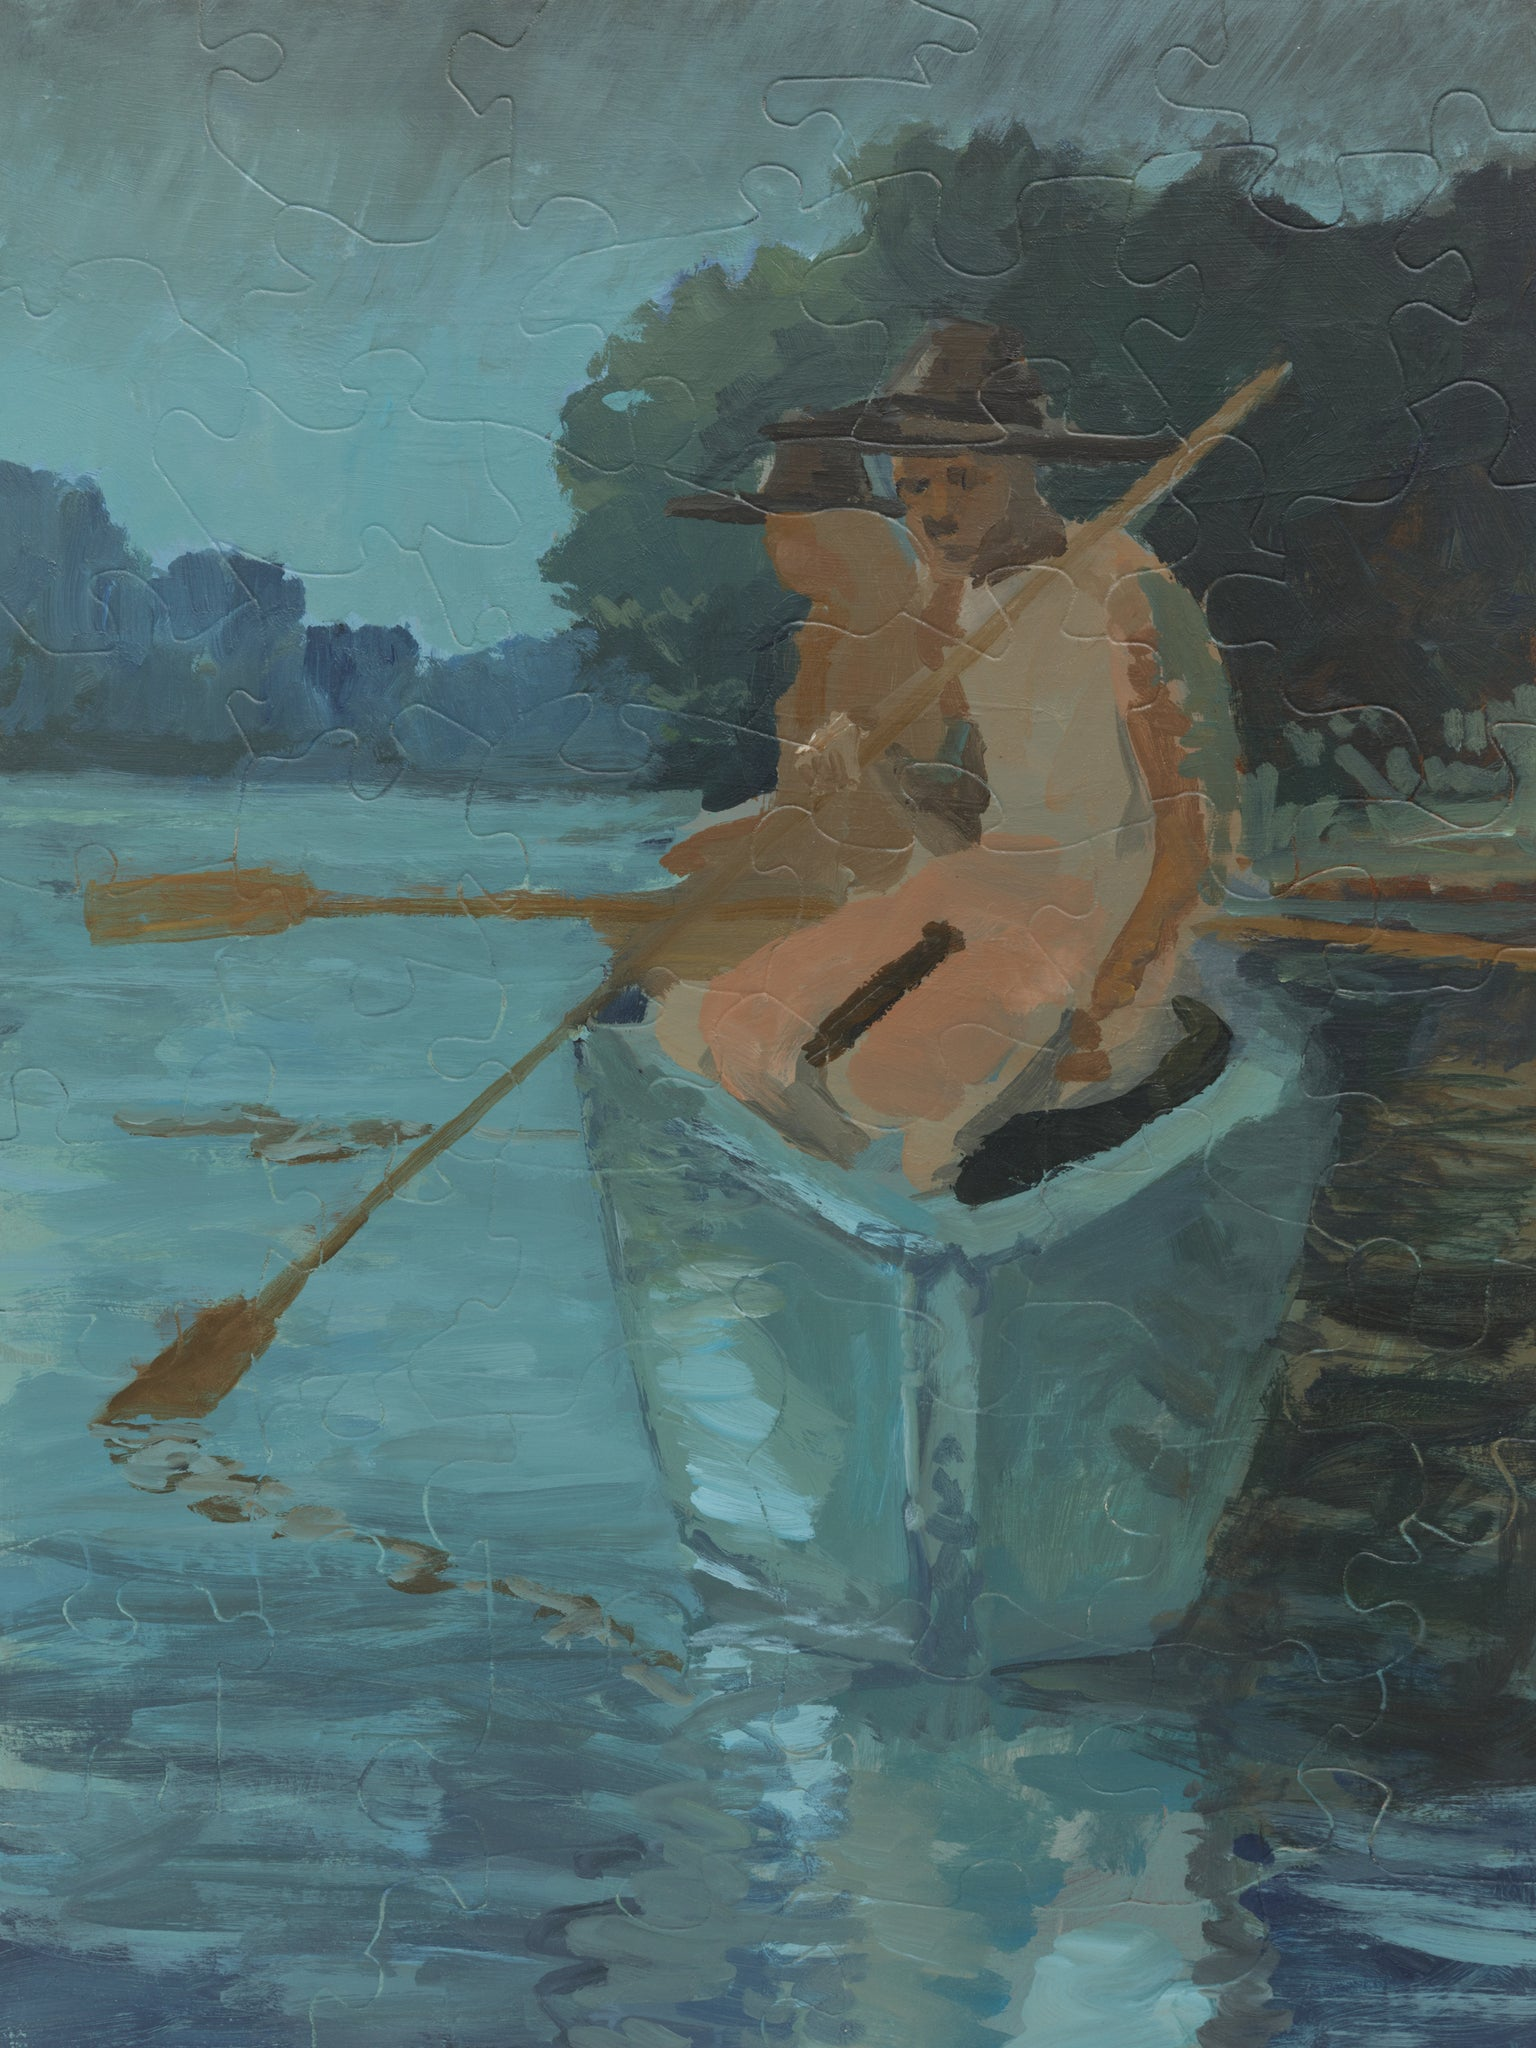 PUZZLE 338 - ROWERS AT TWILIGHT